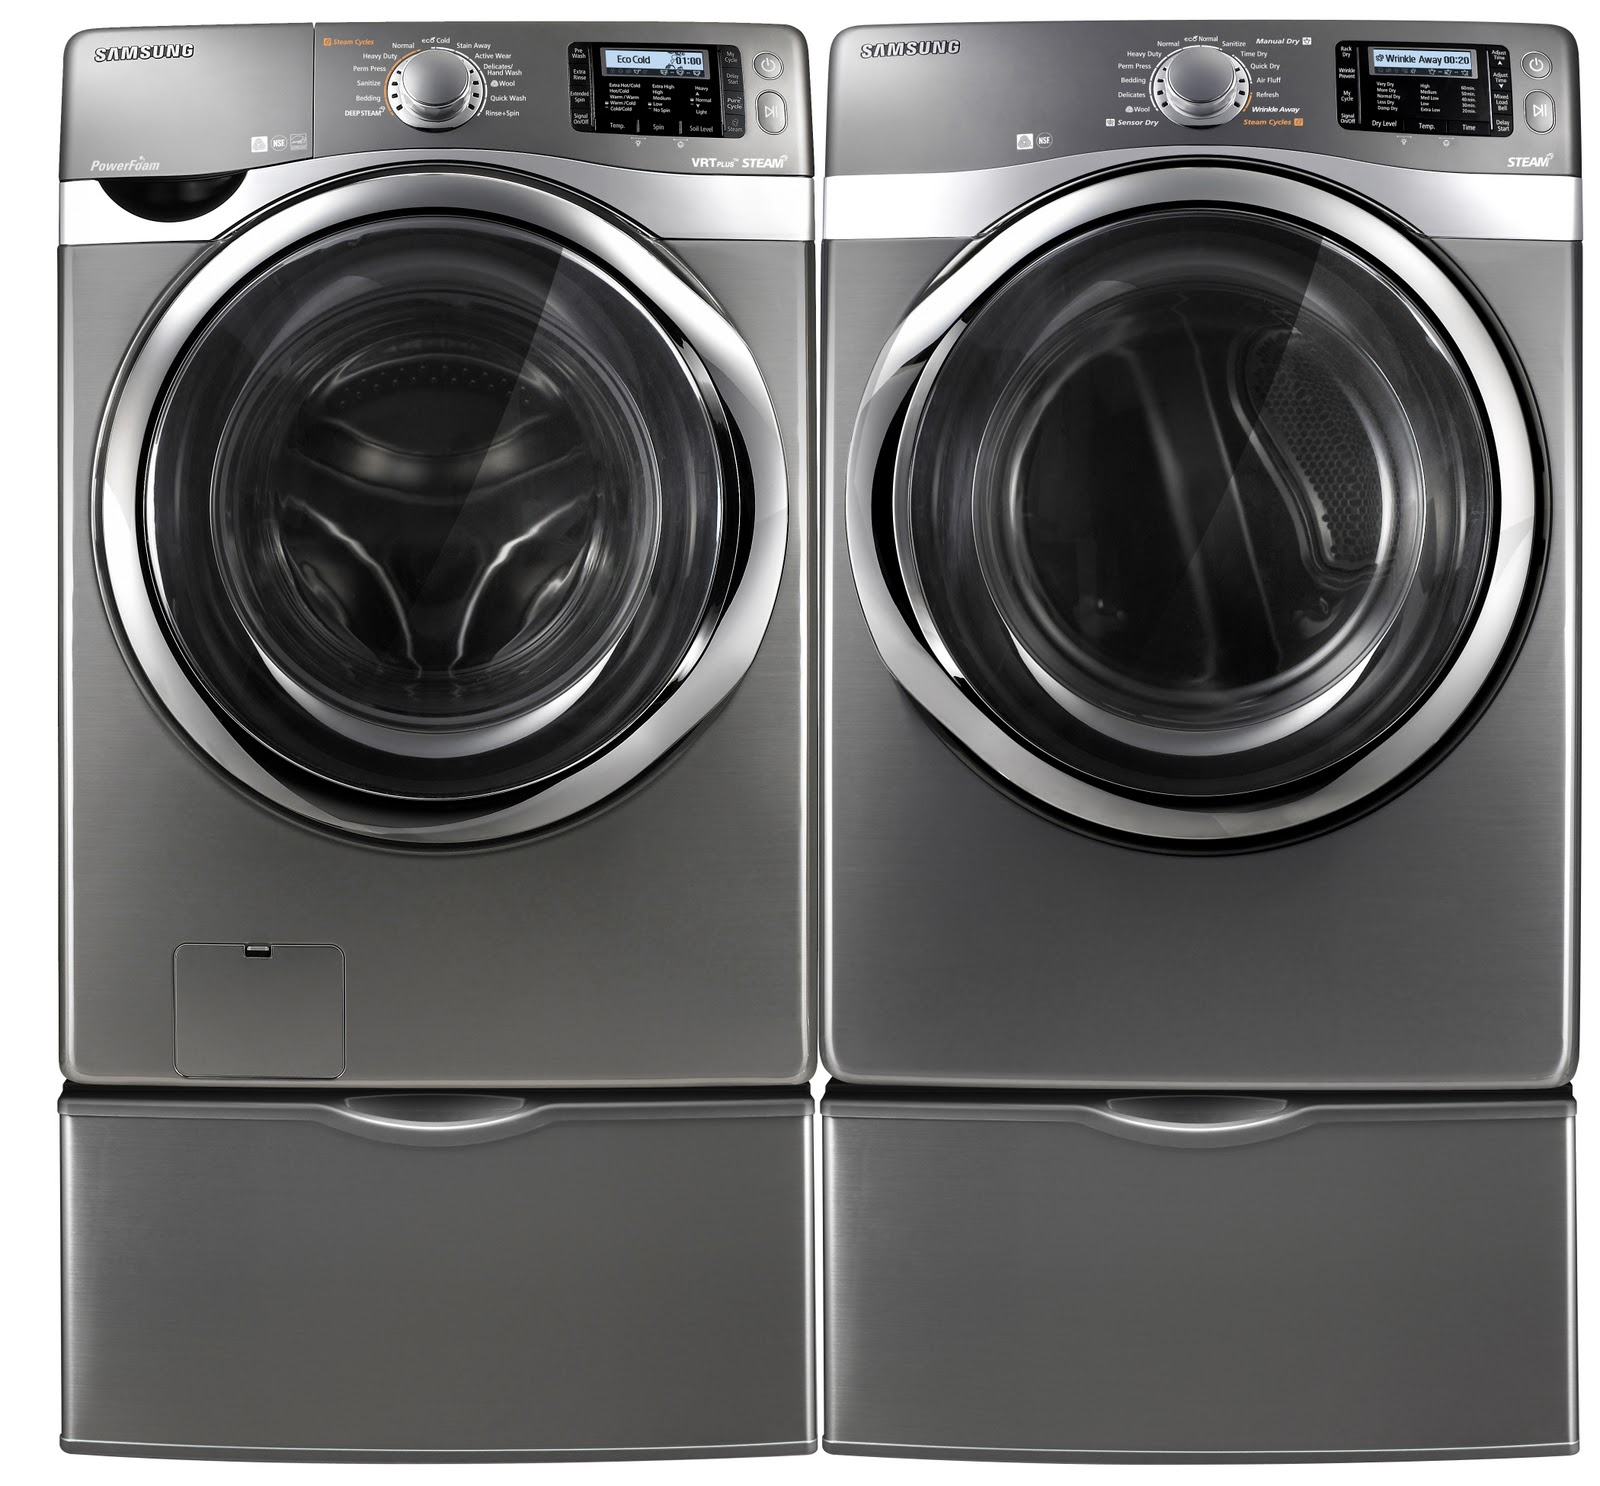 Washer Dryer Tips